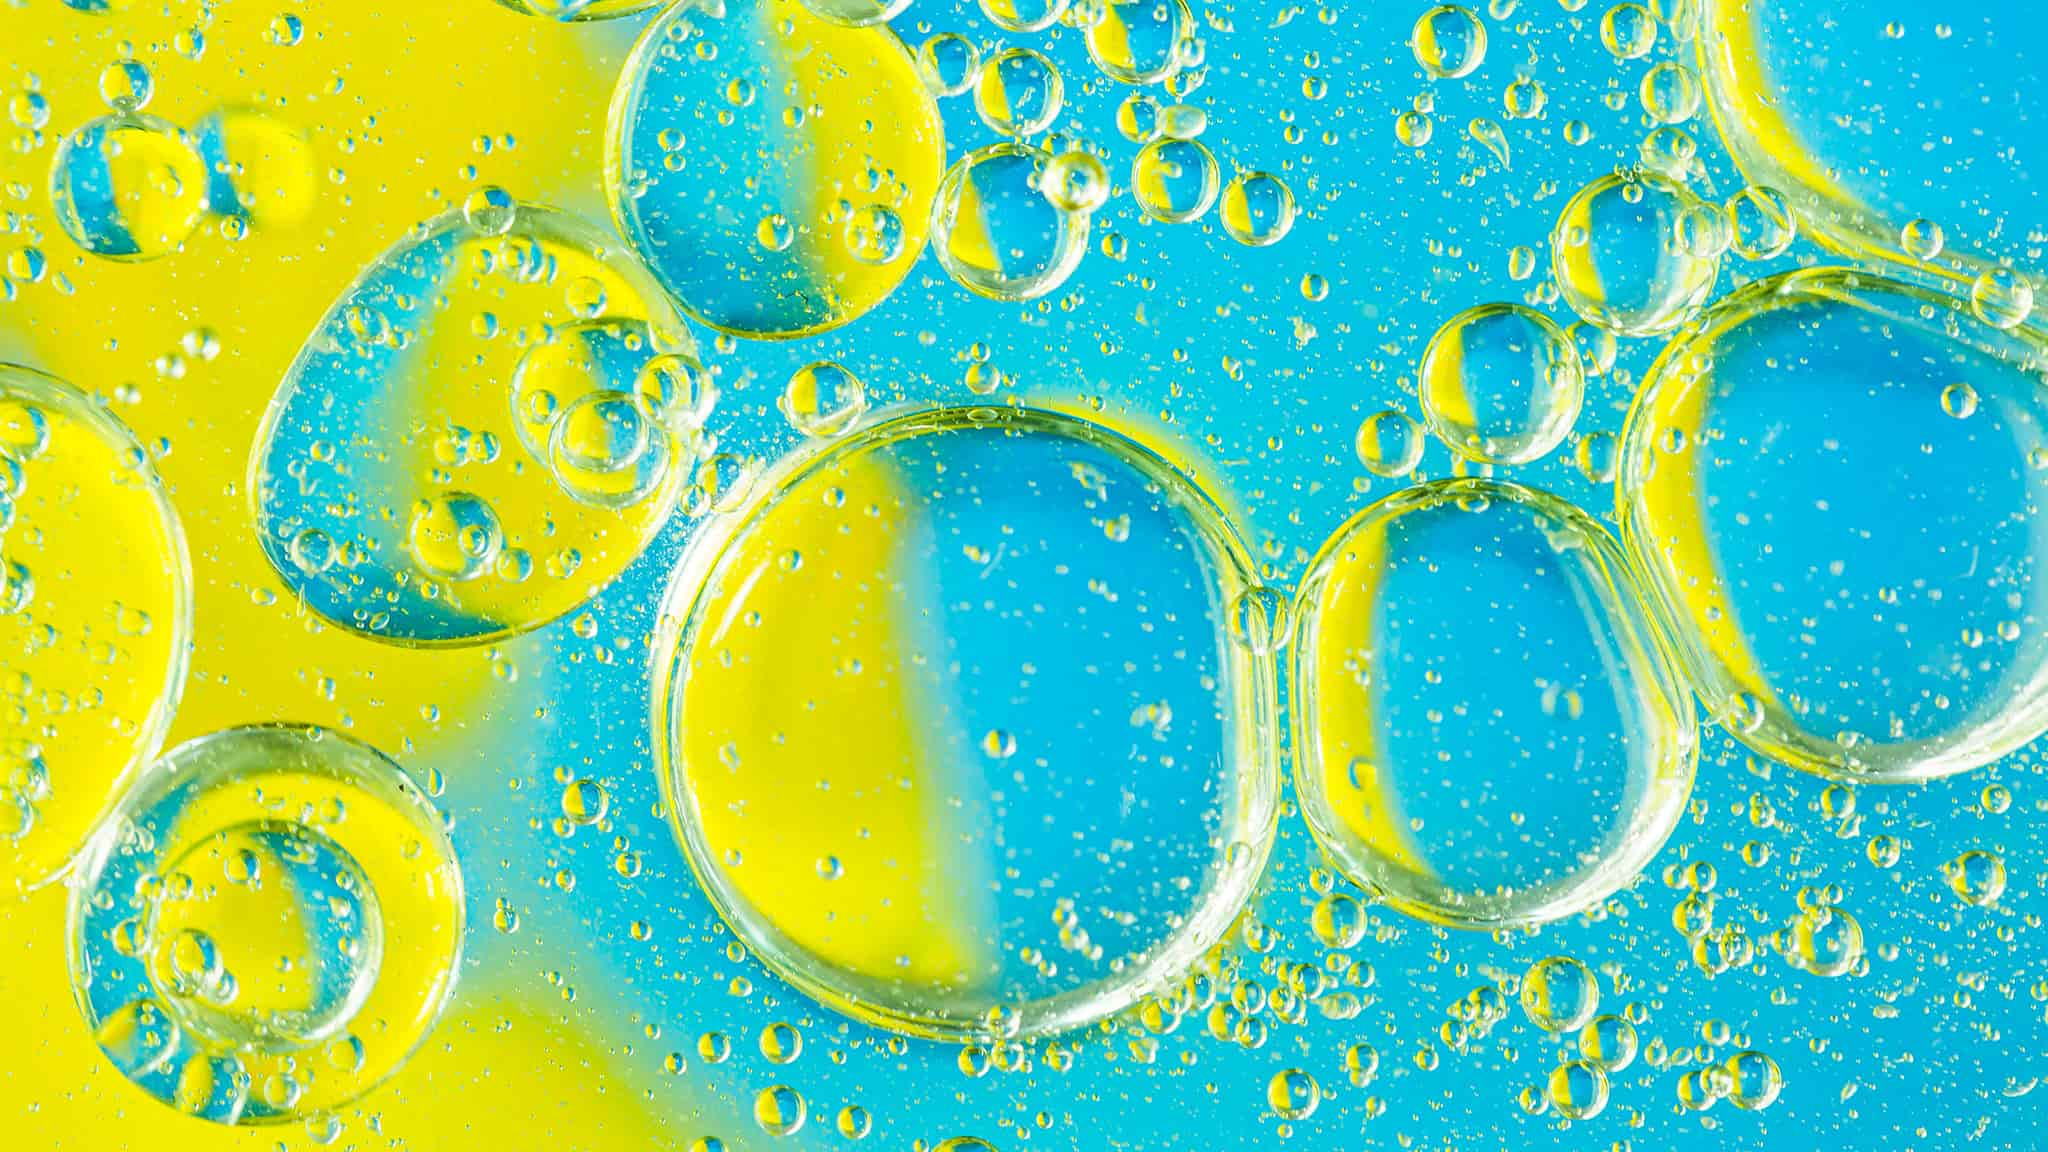 Macro Image Of Yellow And Blue Liquid Bubbles, Silicone Oil Mixing With Water Concept